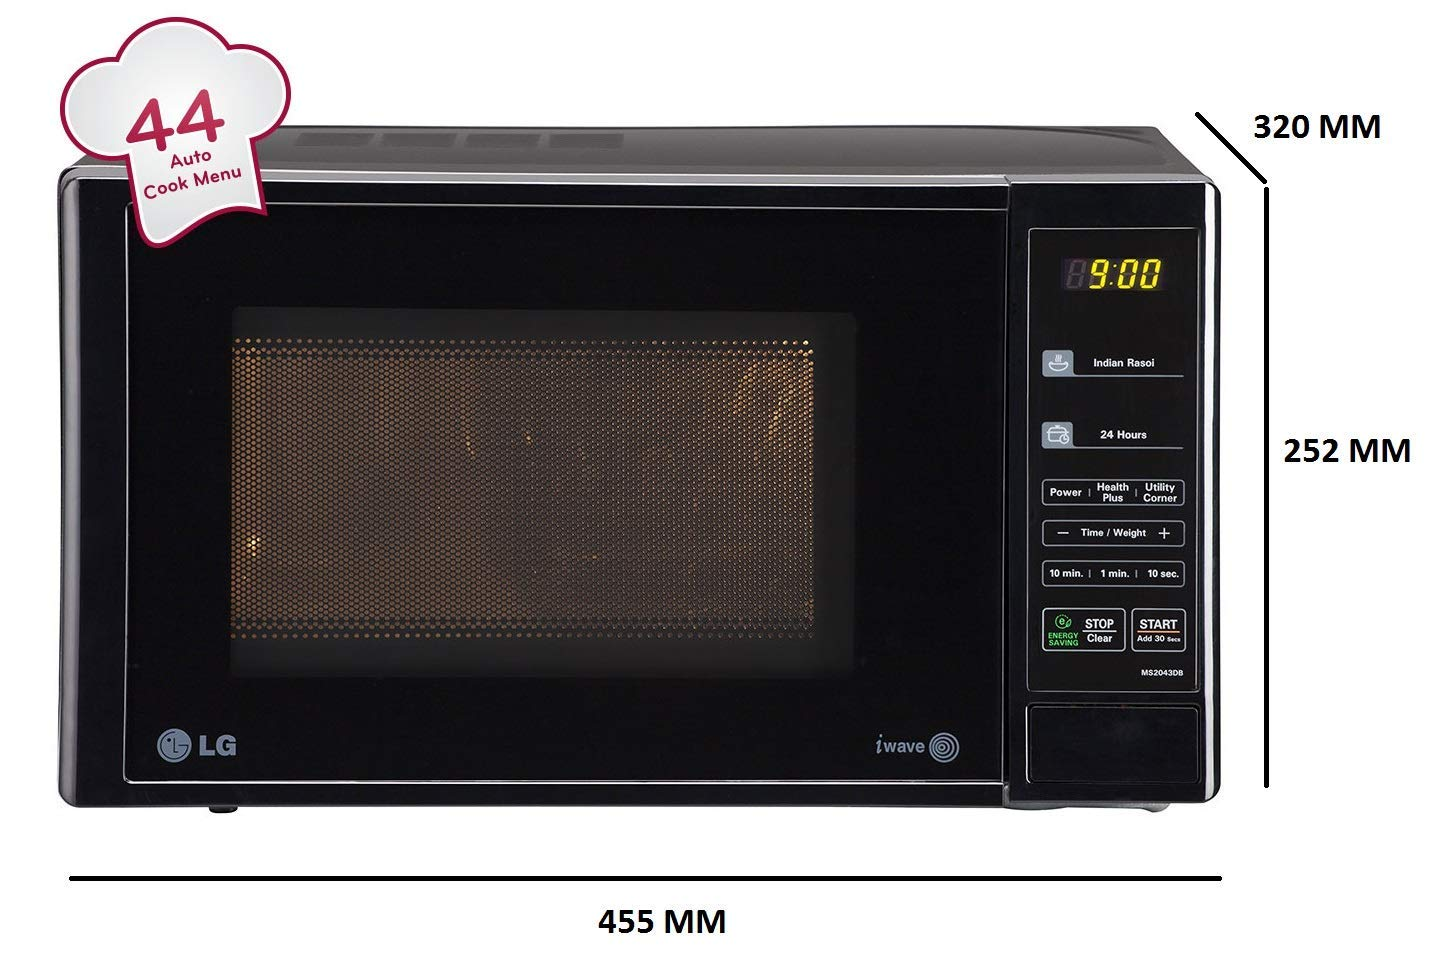 LG 20 L Solo Microwave Oven (MS2043DB, Black) 02